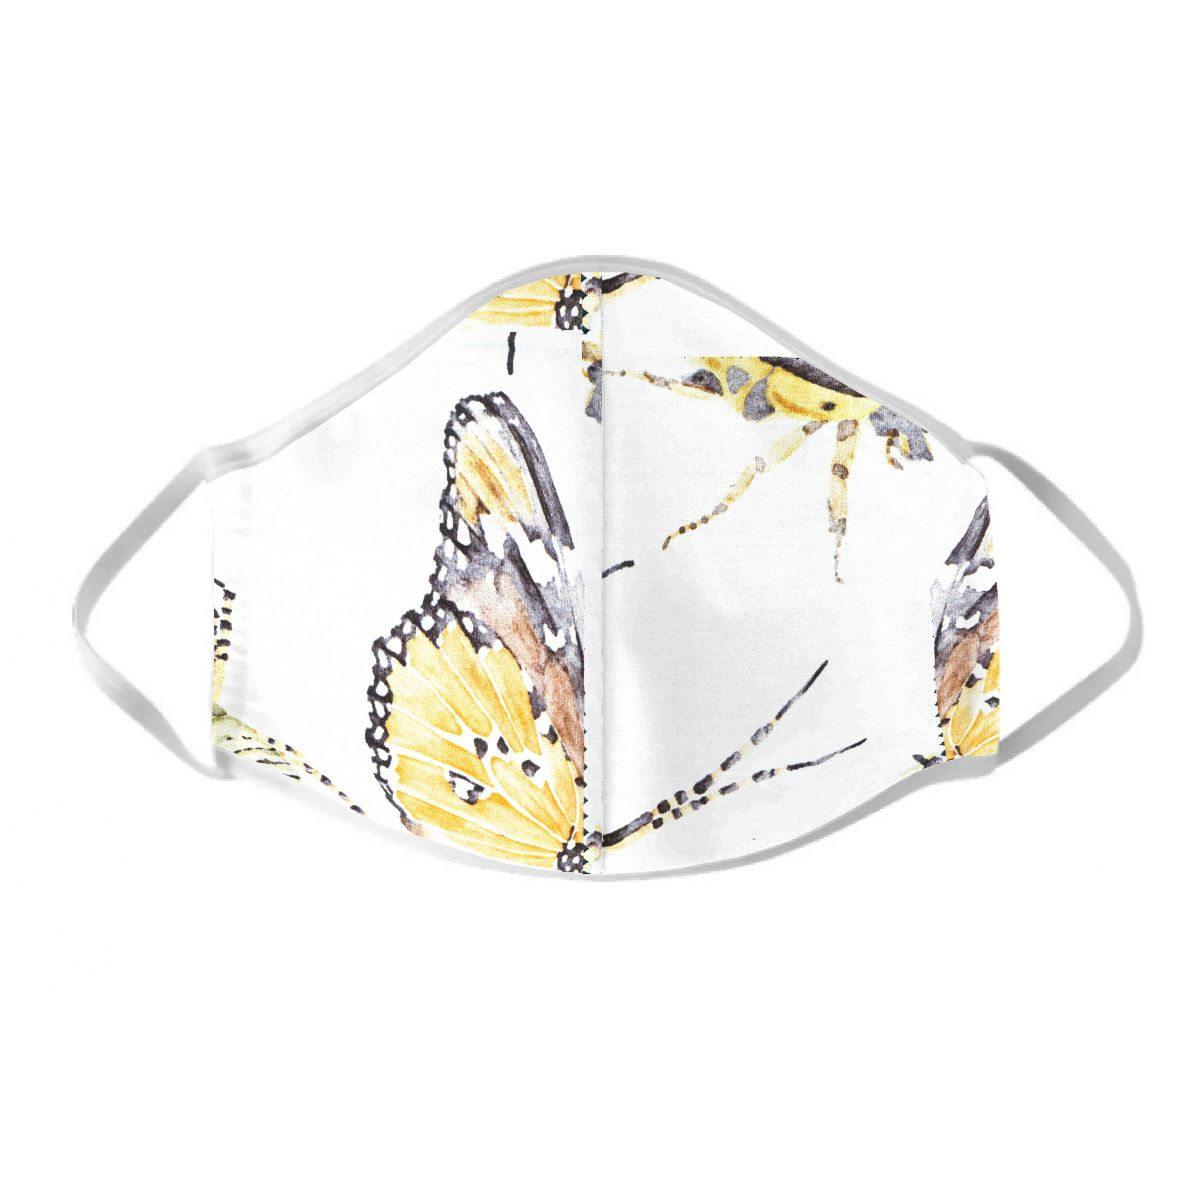 Masque de protection fantaisie blanc motif papillon jaune